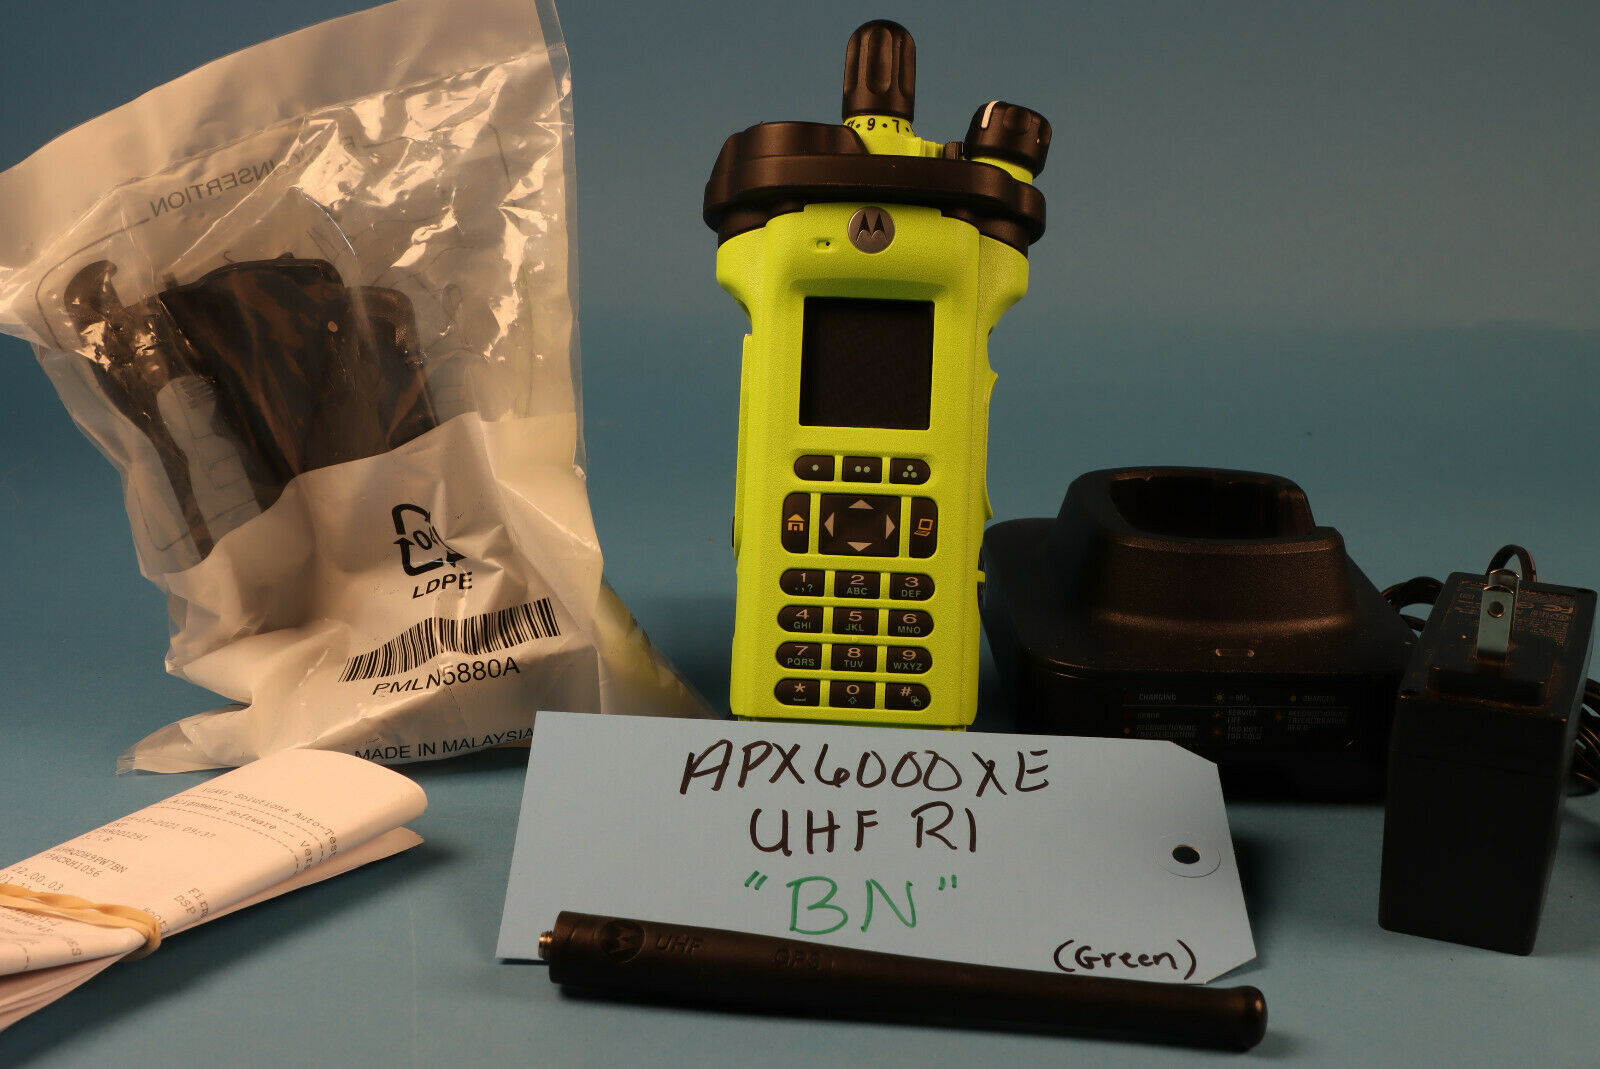 Motorola APX6000XE BN UHF R1 FPP w/ Green Housing Charger Ant *NoTags. Available Now for 2150.00